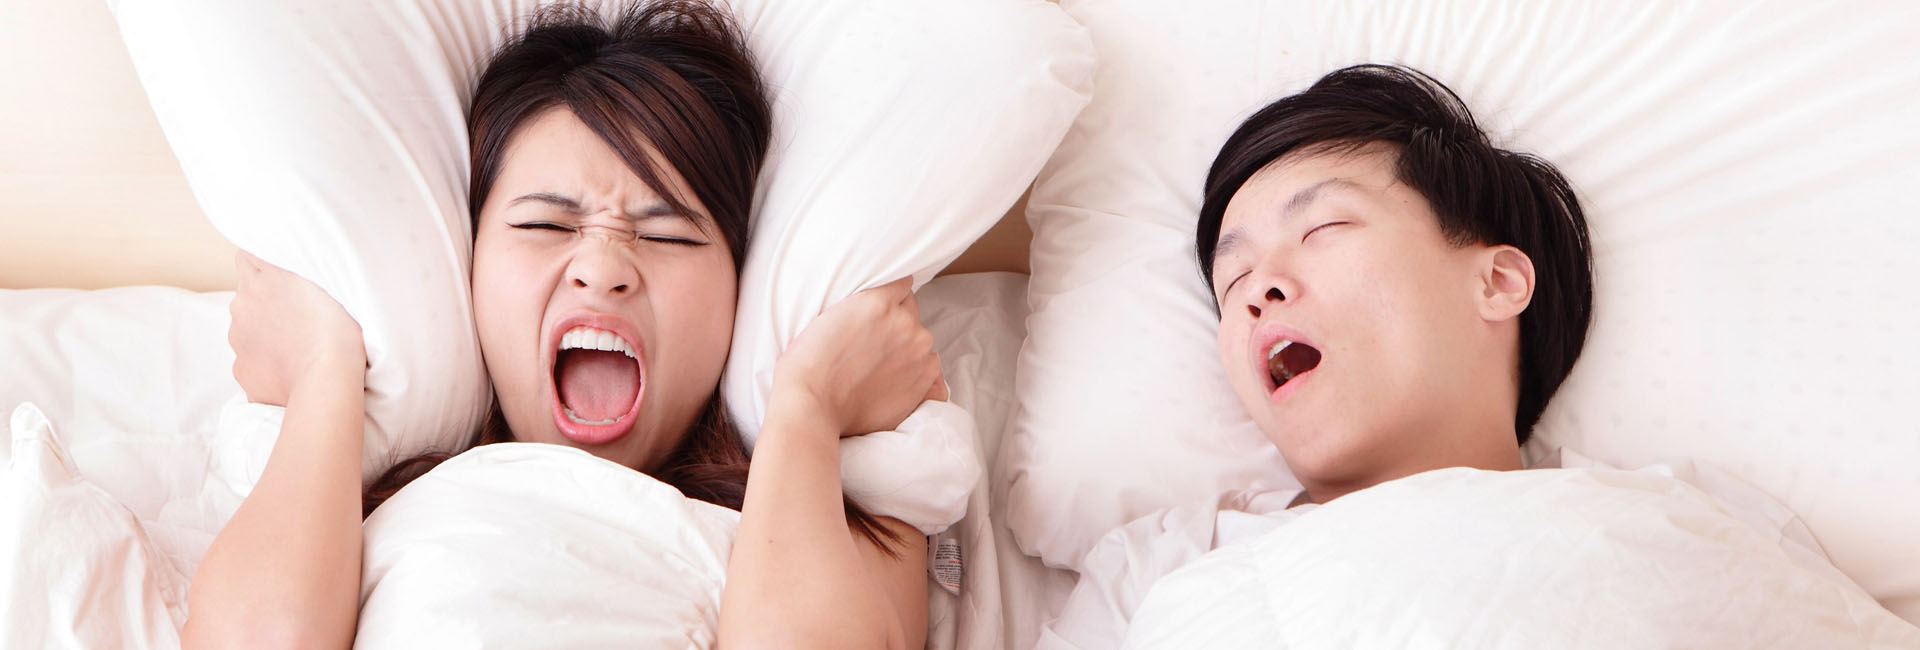 sleep apnea solution - philippines